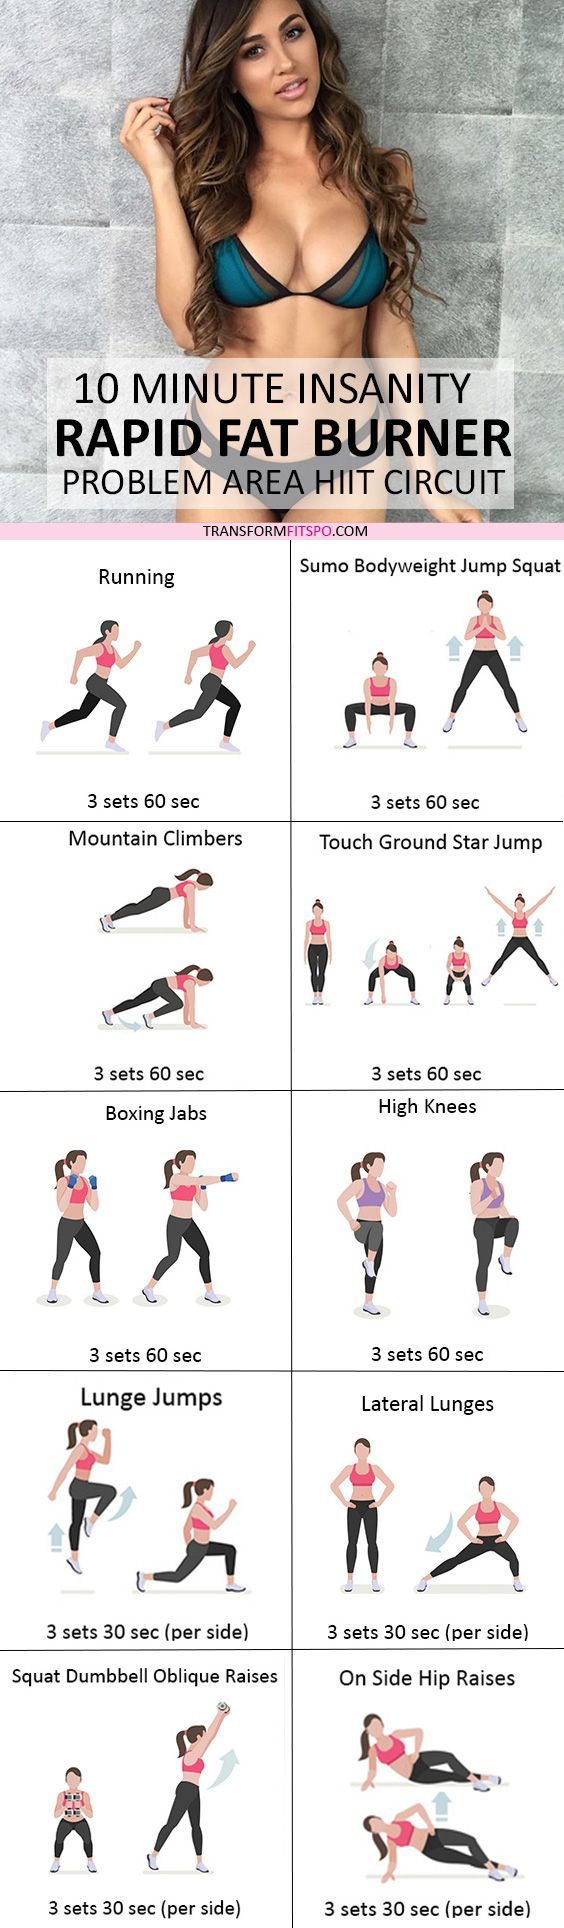 #womensworkout #workout #female fitness Repin and share if this workout got you toned all over! Click the pin for the full workout.